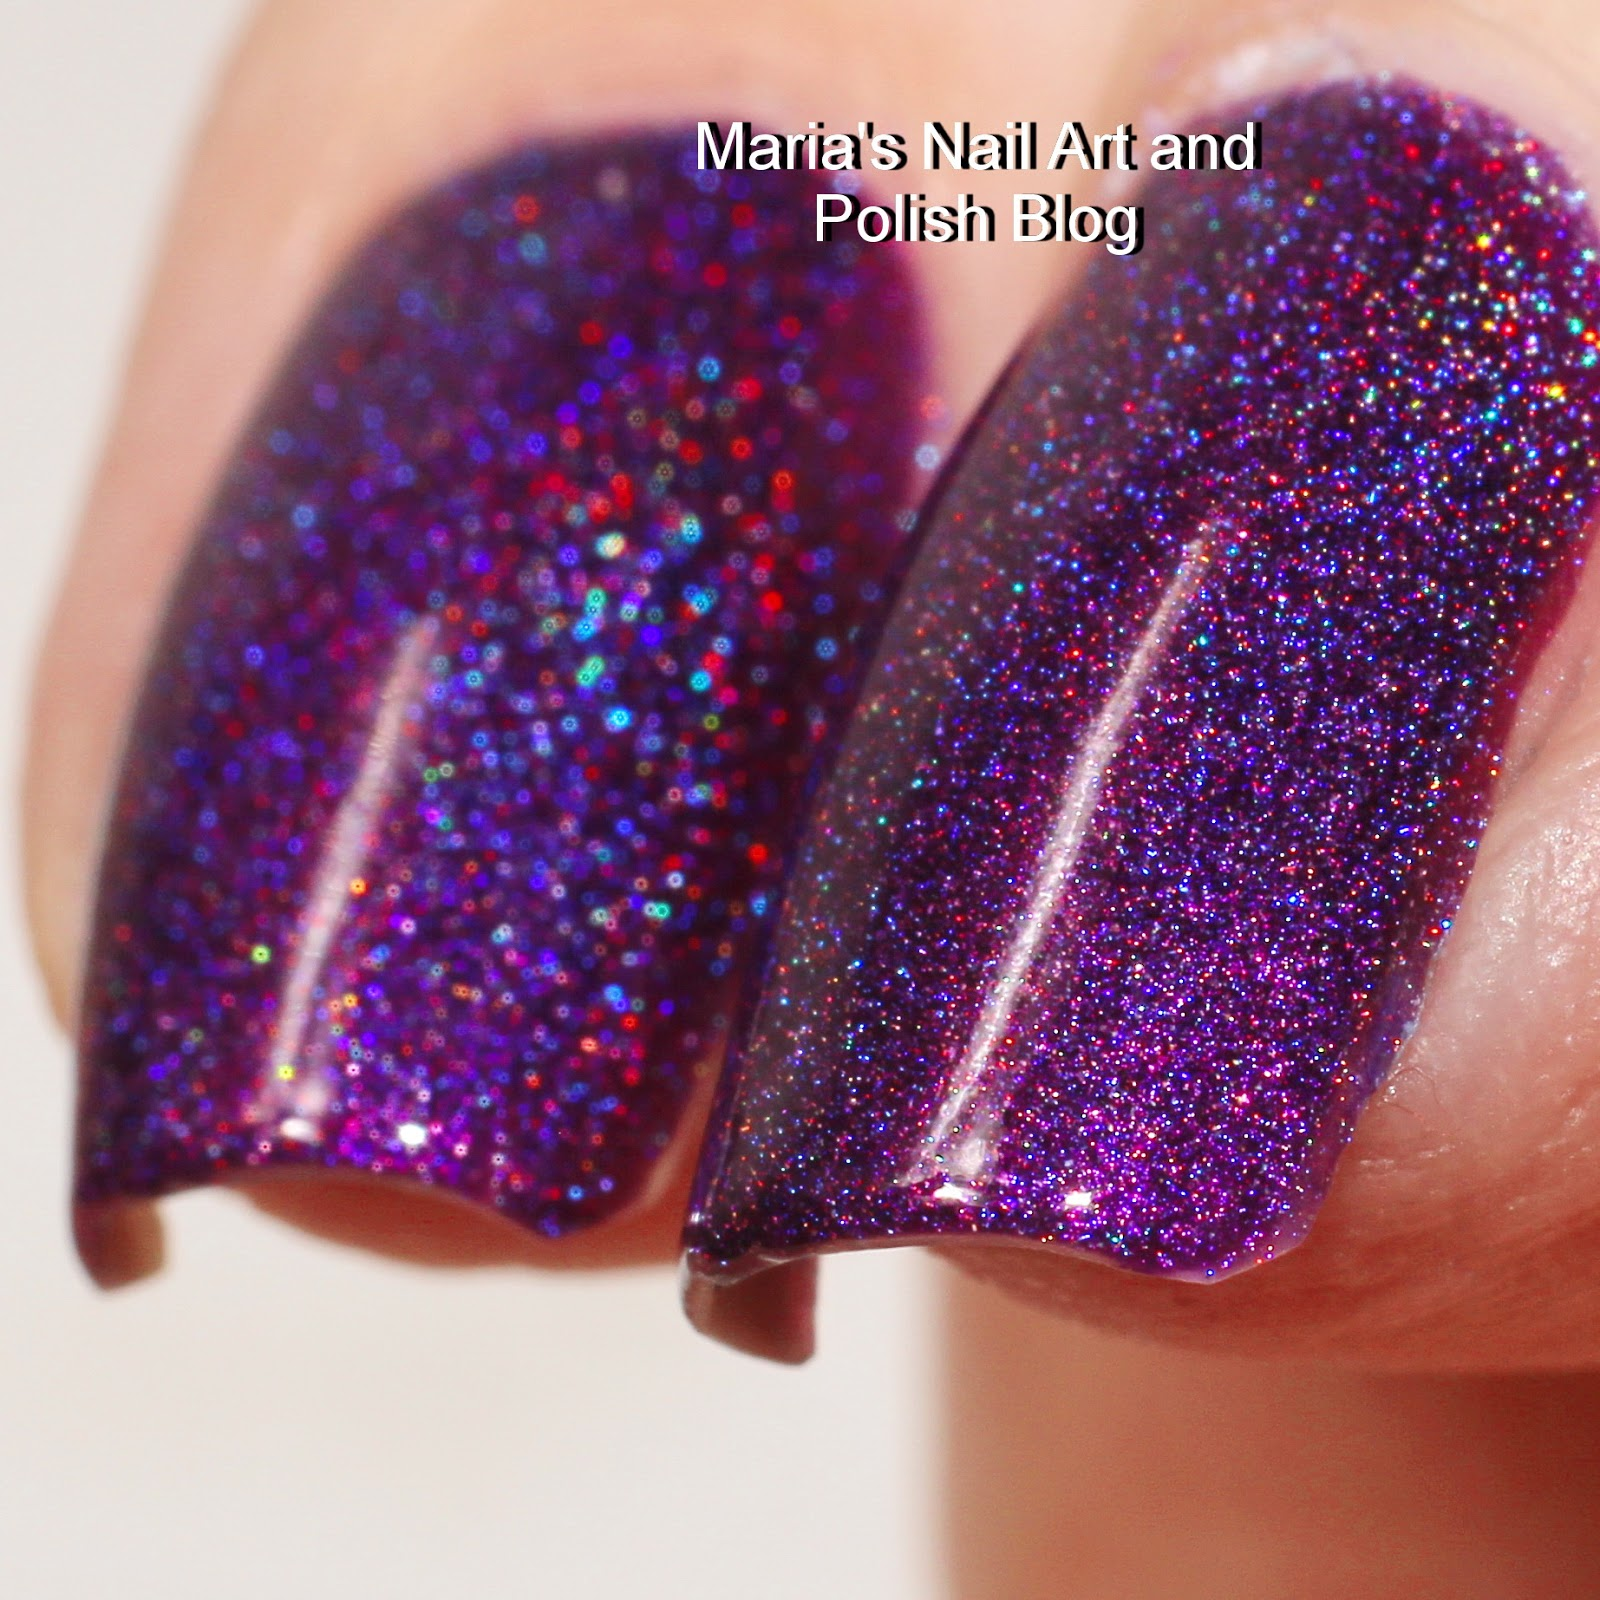 Marias Nail Art And Polish Blog Flushed With Stripes And: Marias Nail Art And Polish Blog: Purrfect Pawlish PurrPurr